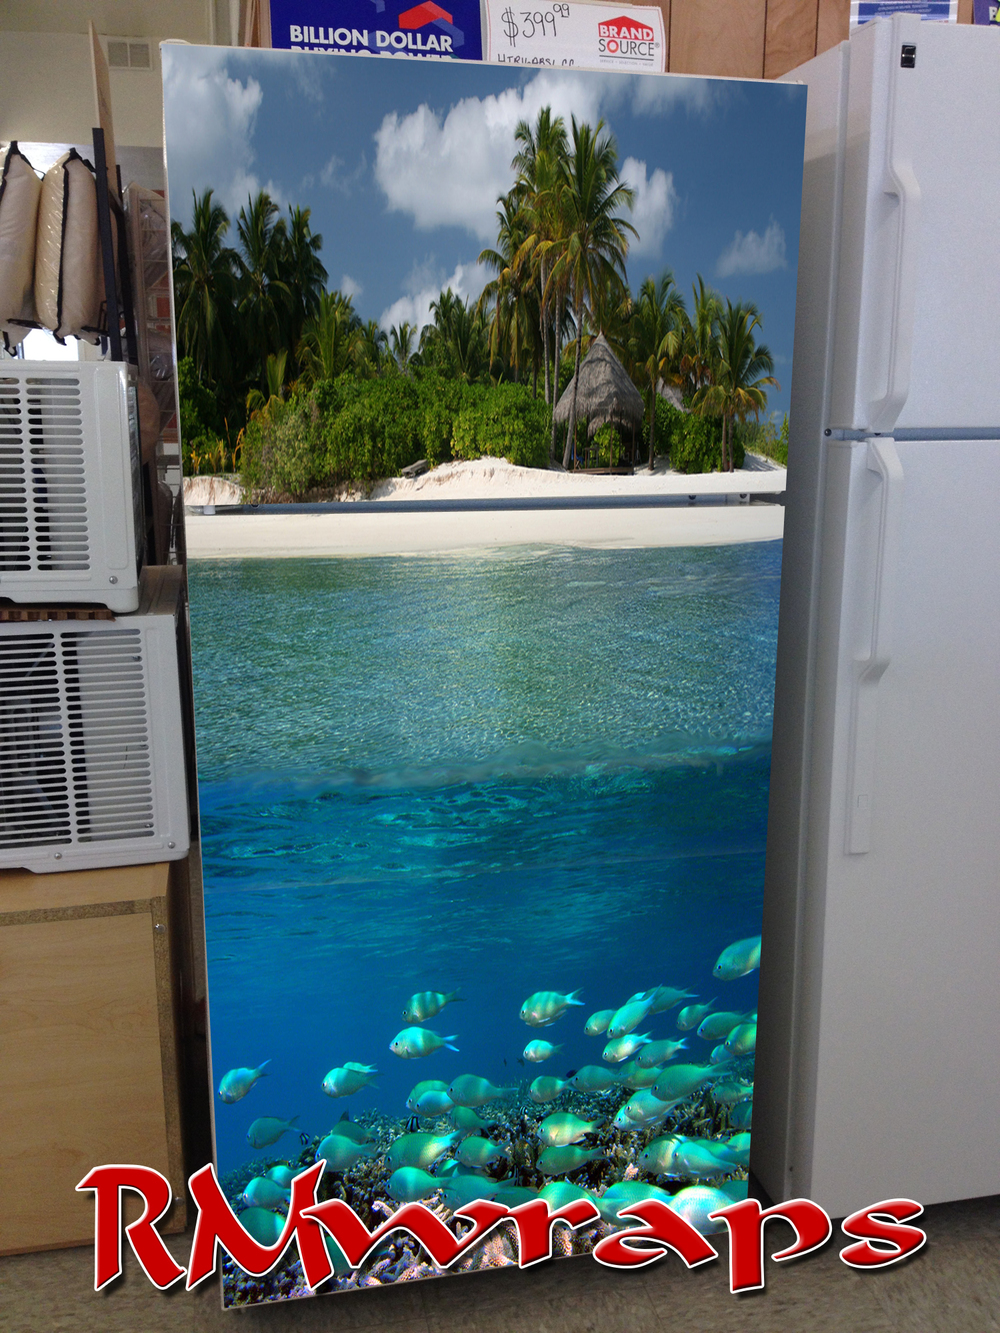 Sandy Beach Refrigerator wrap.jpg